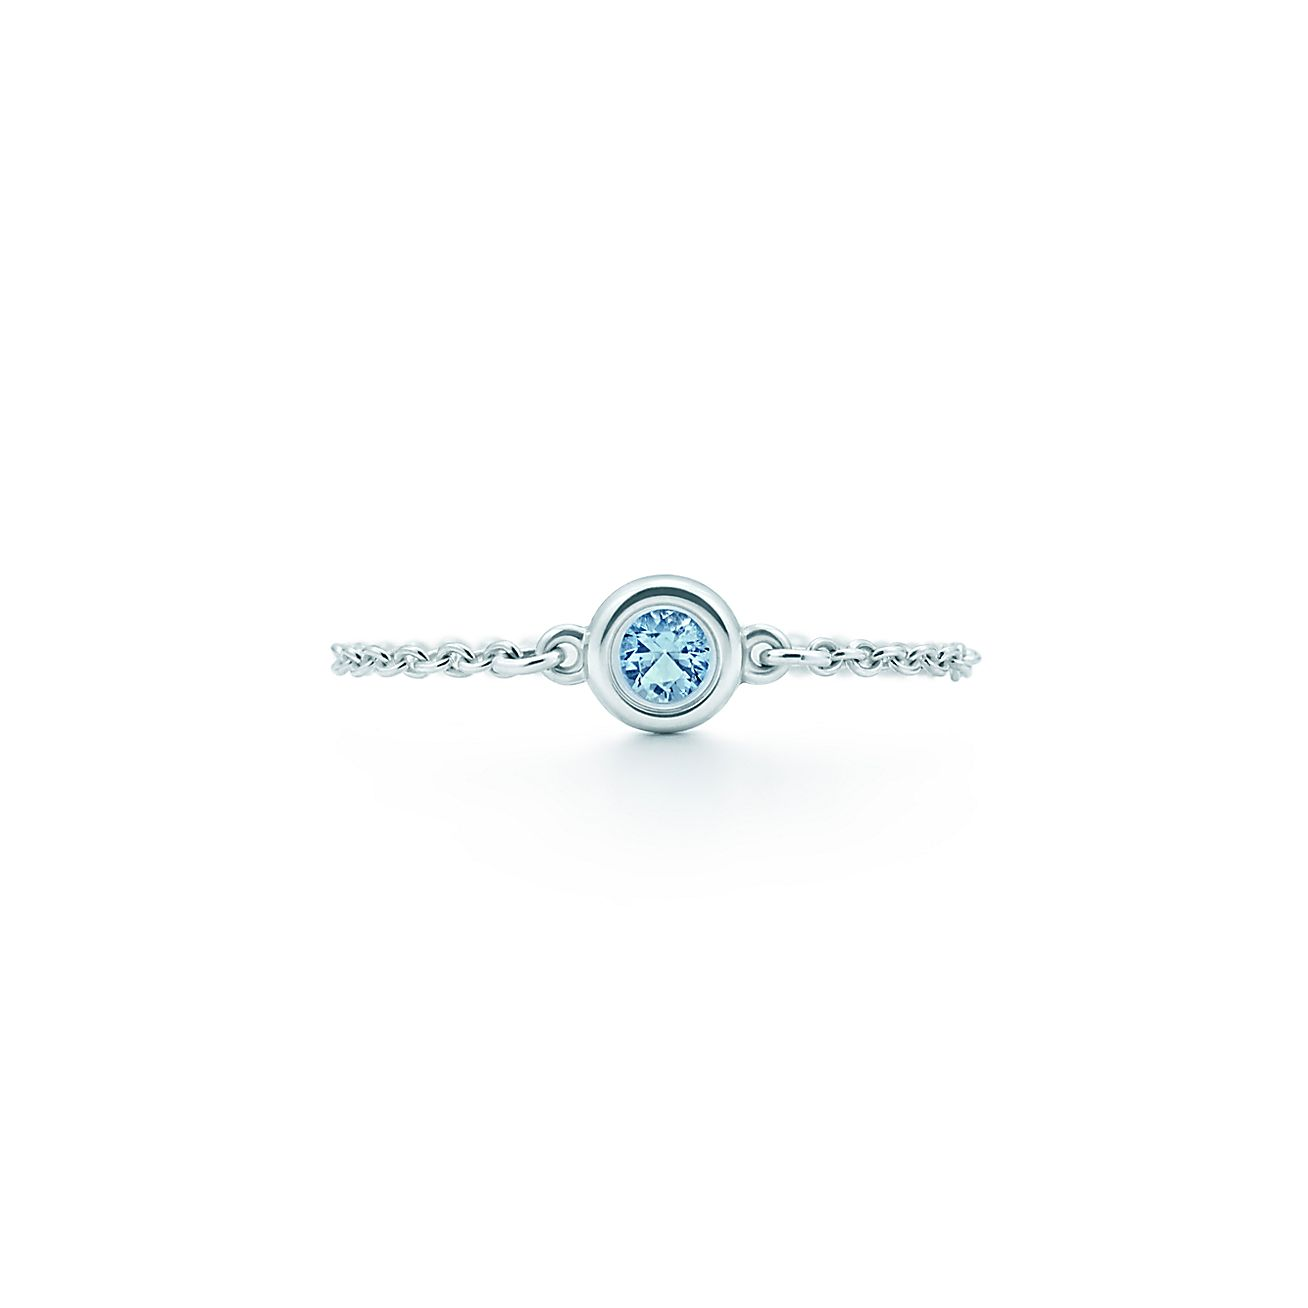 elsa peretti color by the yard ring in sterling silver with an aquamarine tiffany co - Elsa Peretti Color By The Yard Ring